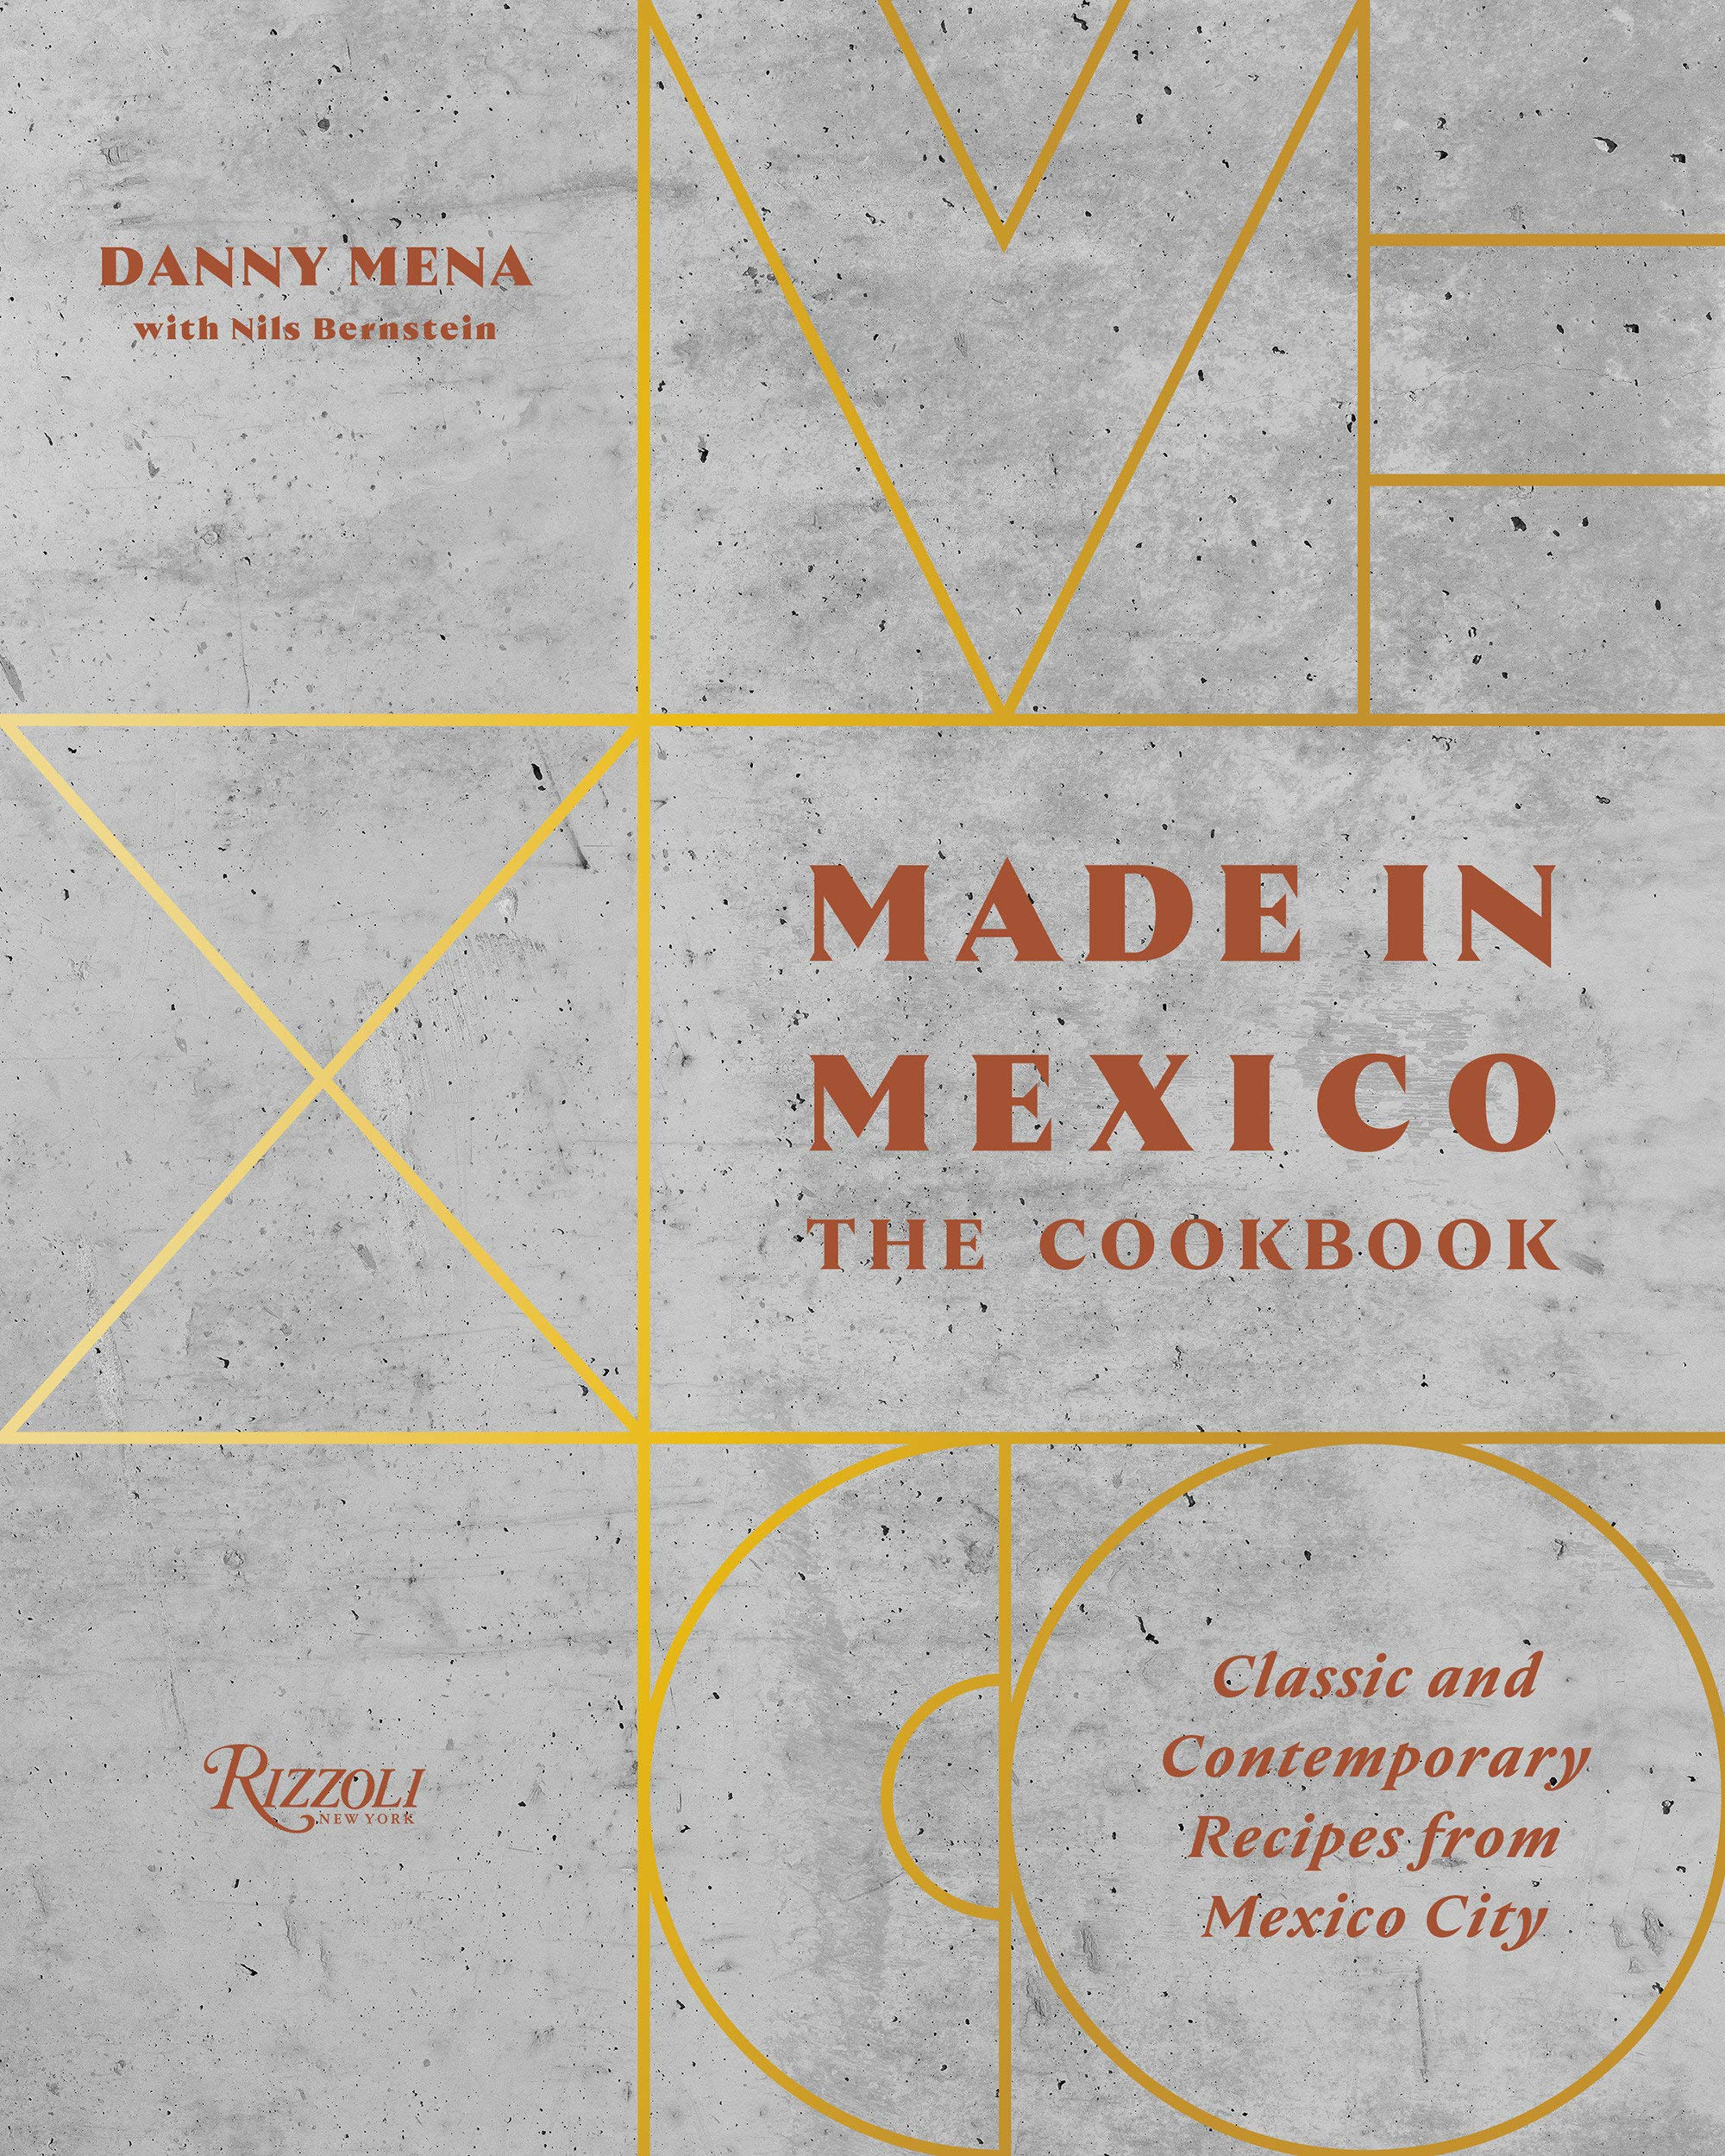 Made in Mexico: The Cookbook: Classic And Contemporary Recipes From Mexico City by Rizzoli